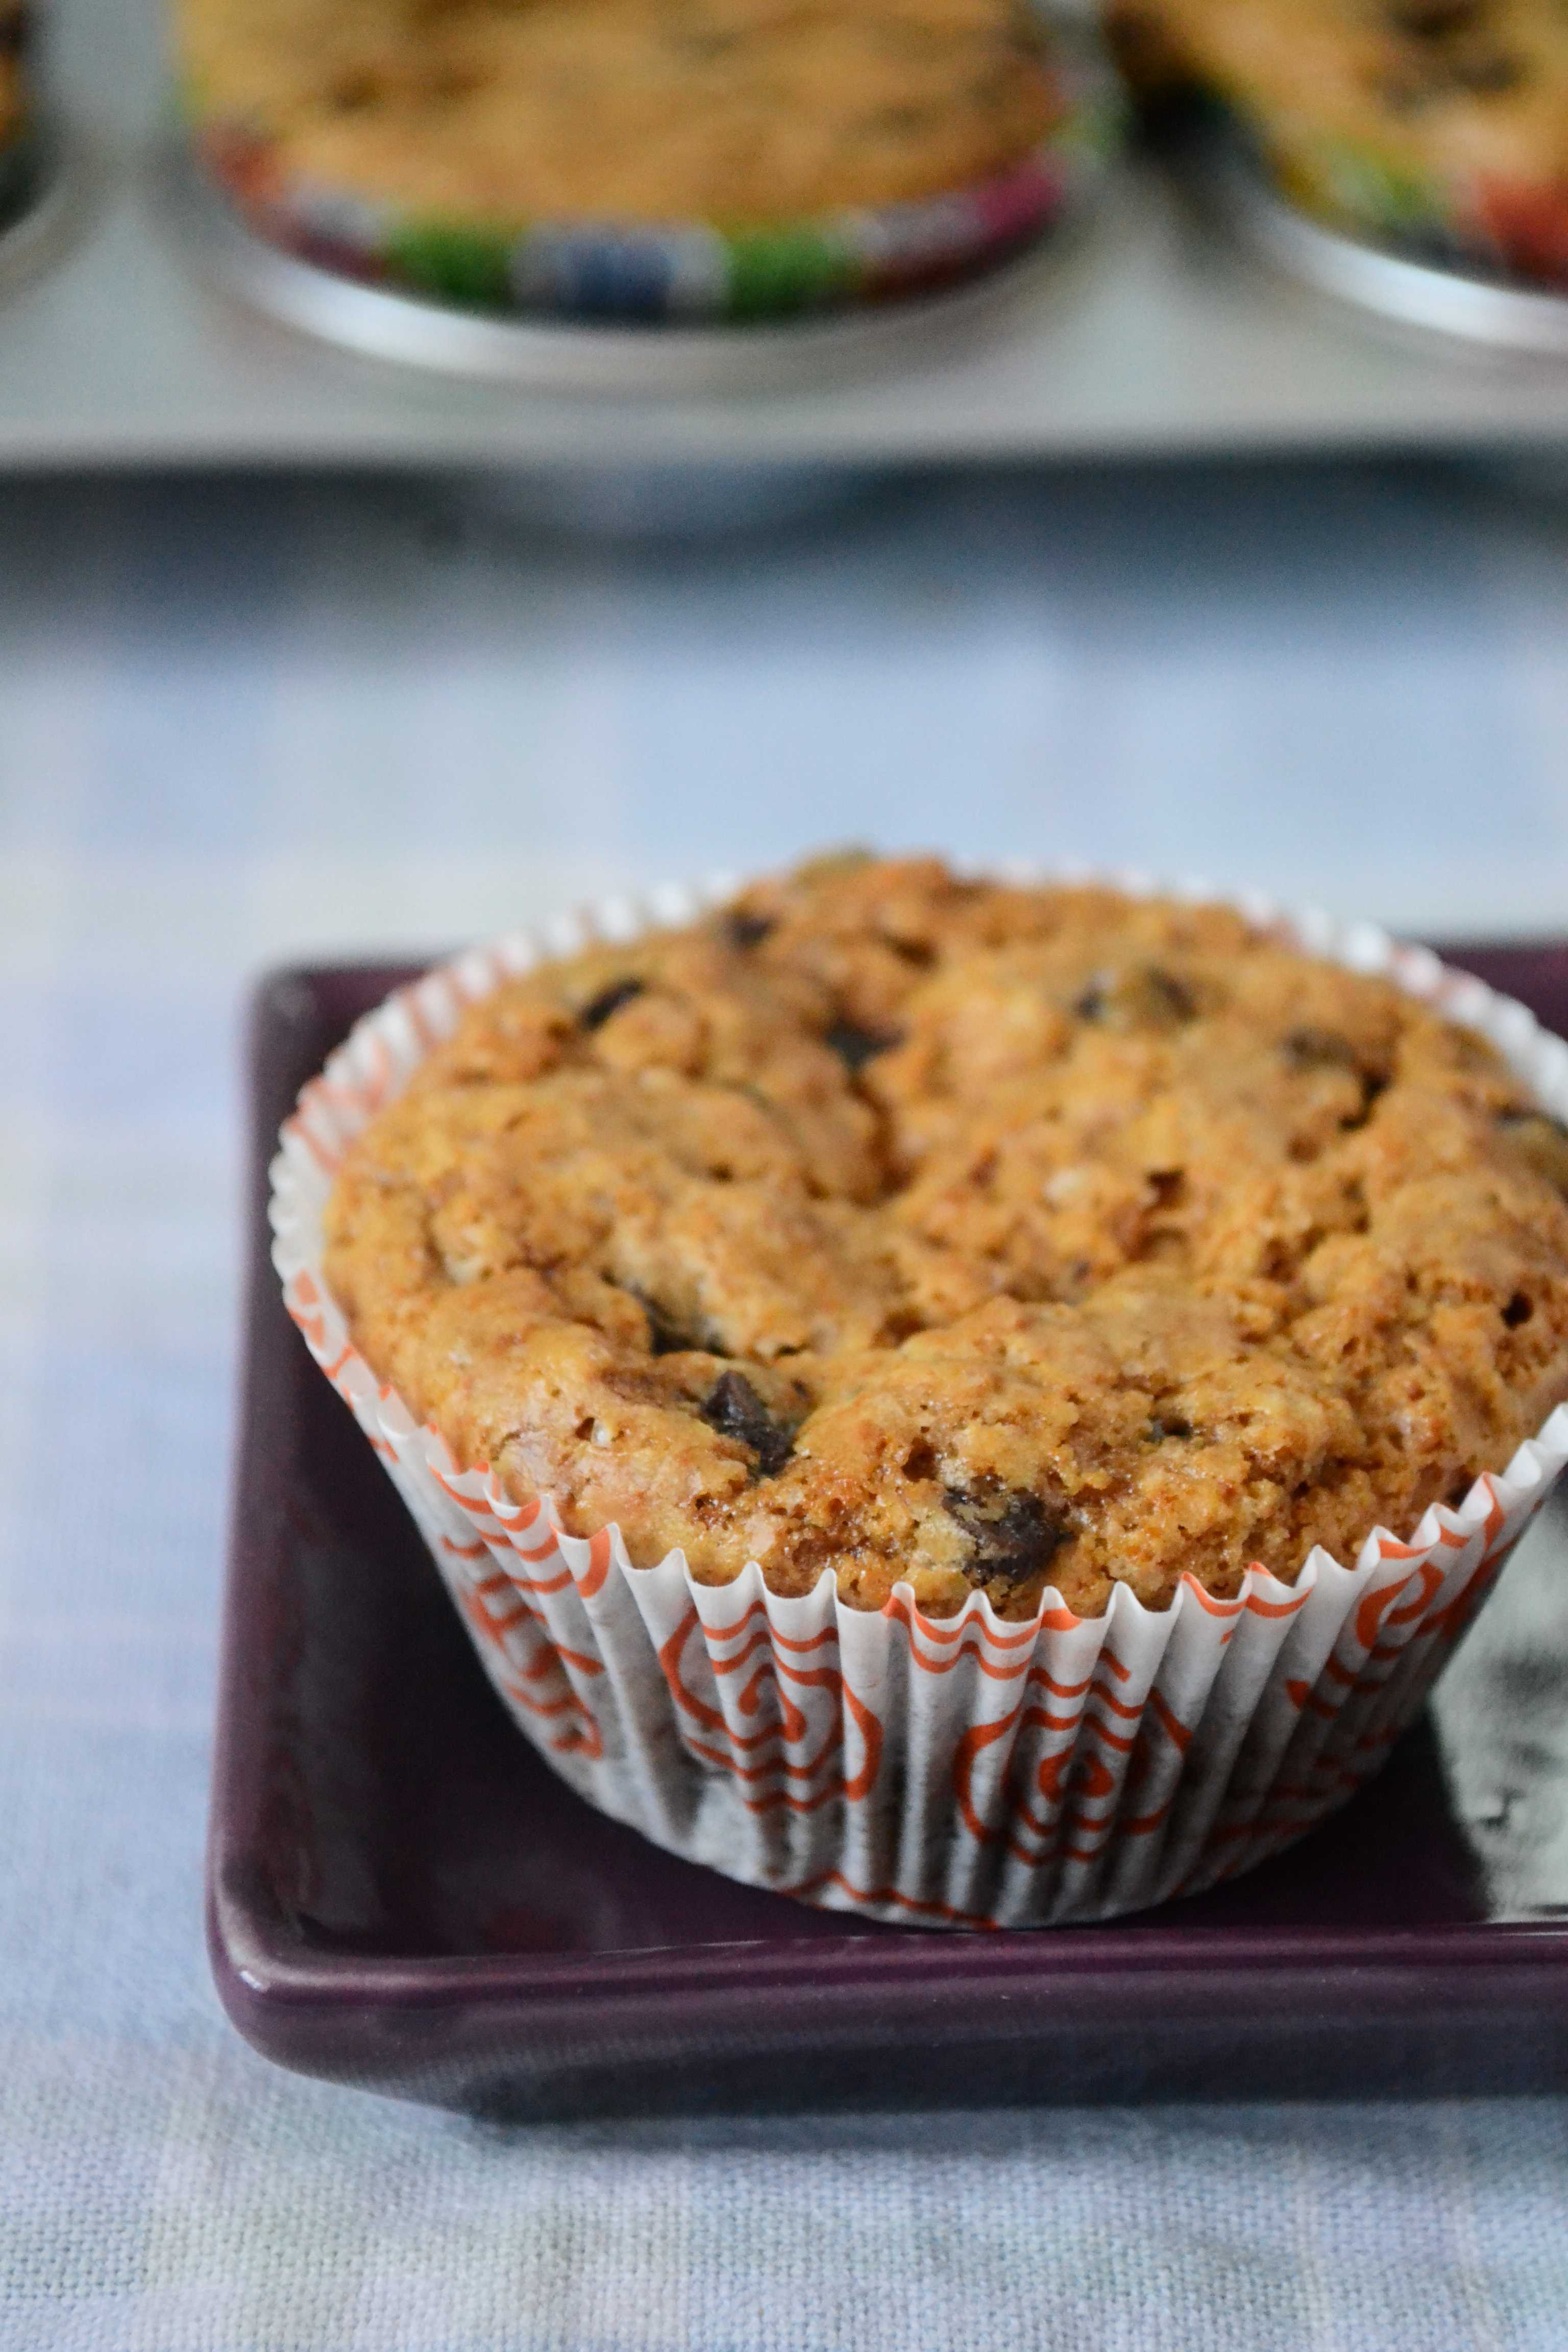 Eggless Peanut Butter Choco Chip Oats Muffins